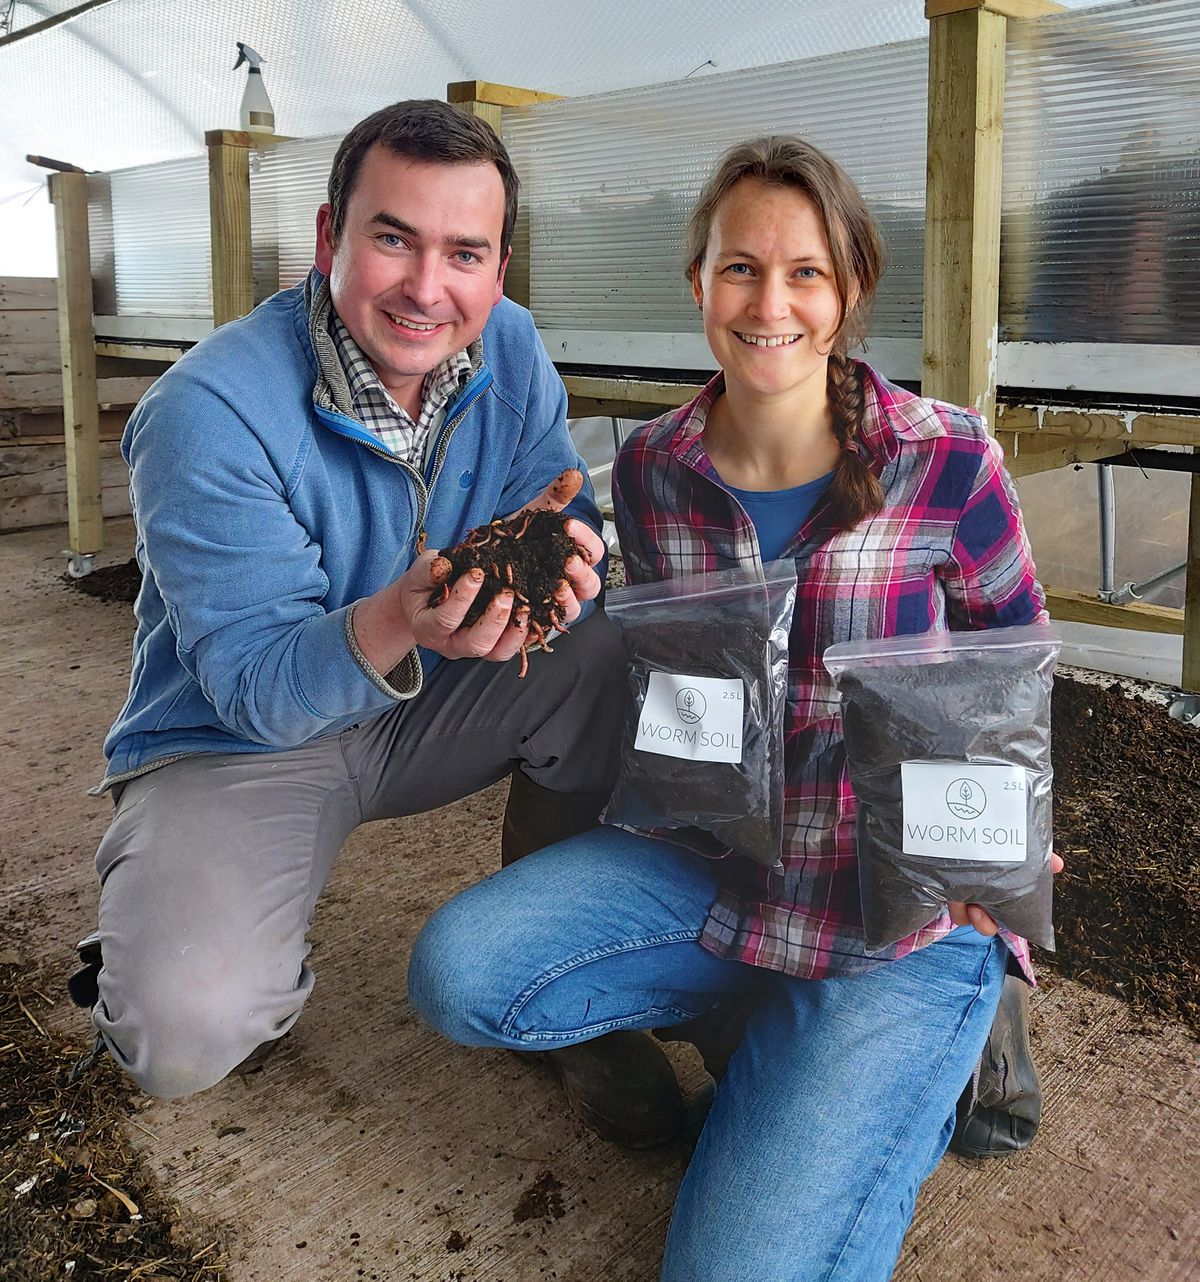 Down on the farm... Luke and Steph Boxall with their worm soil.